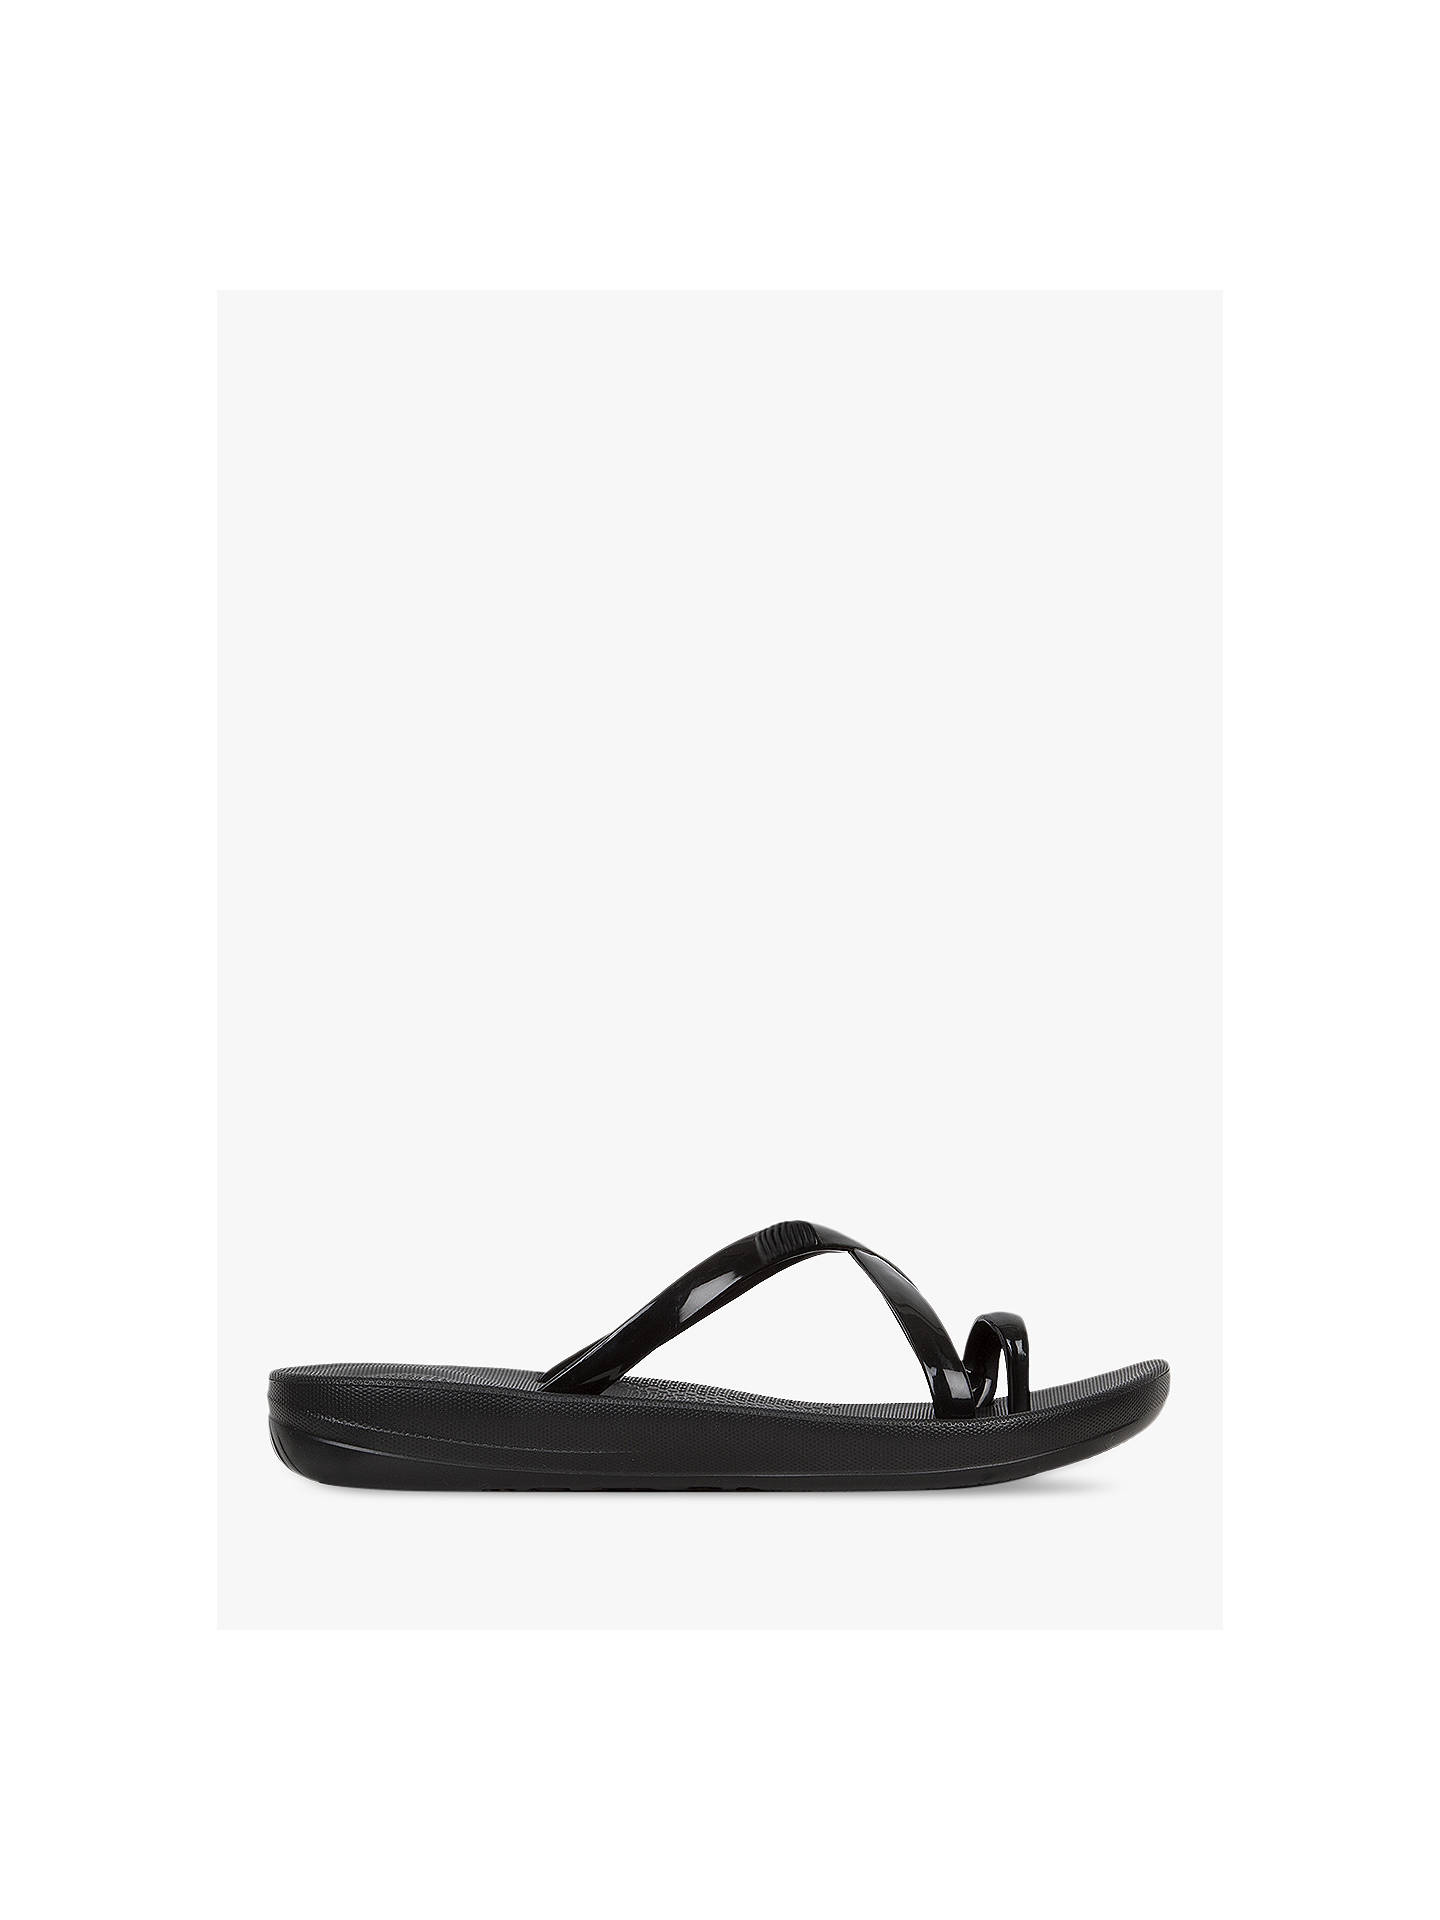 3985ece62 FitFlop Iqushion Wave Slide Sandals at John Lewis   Partners